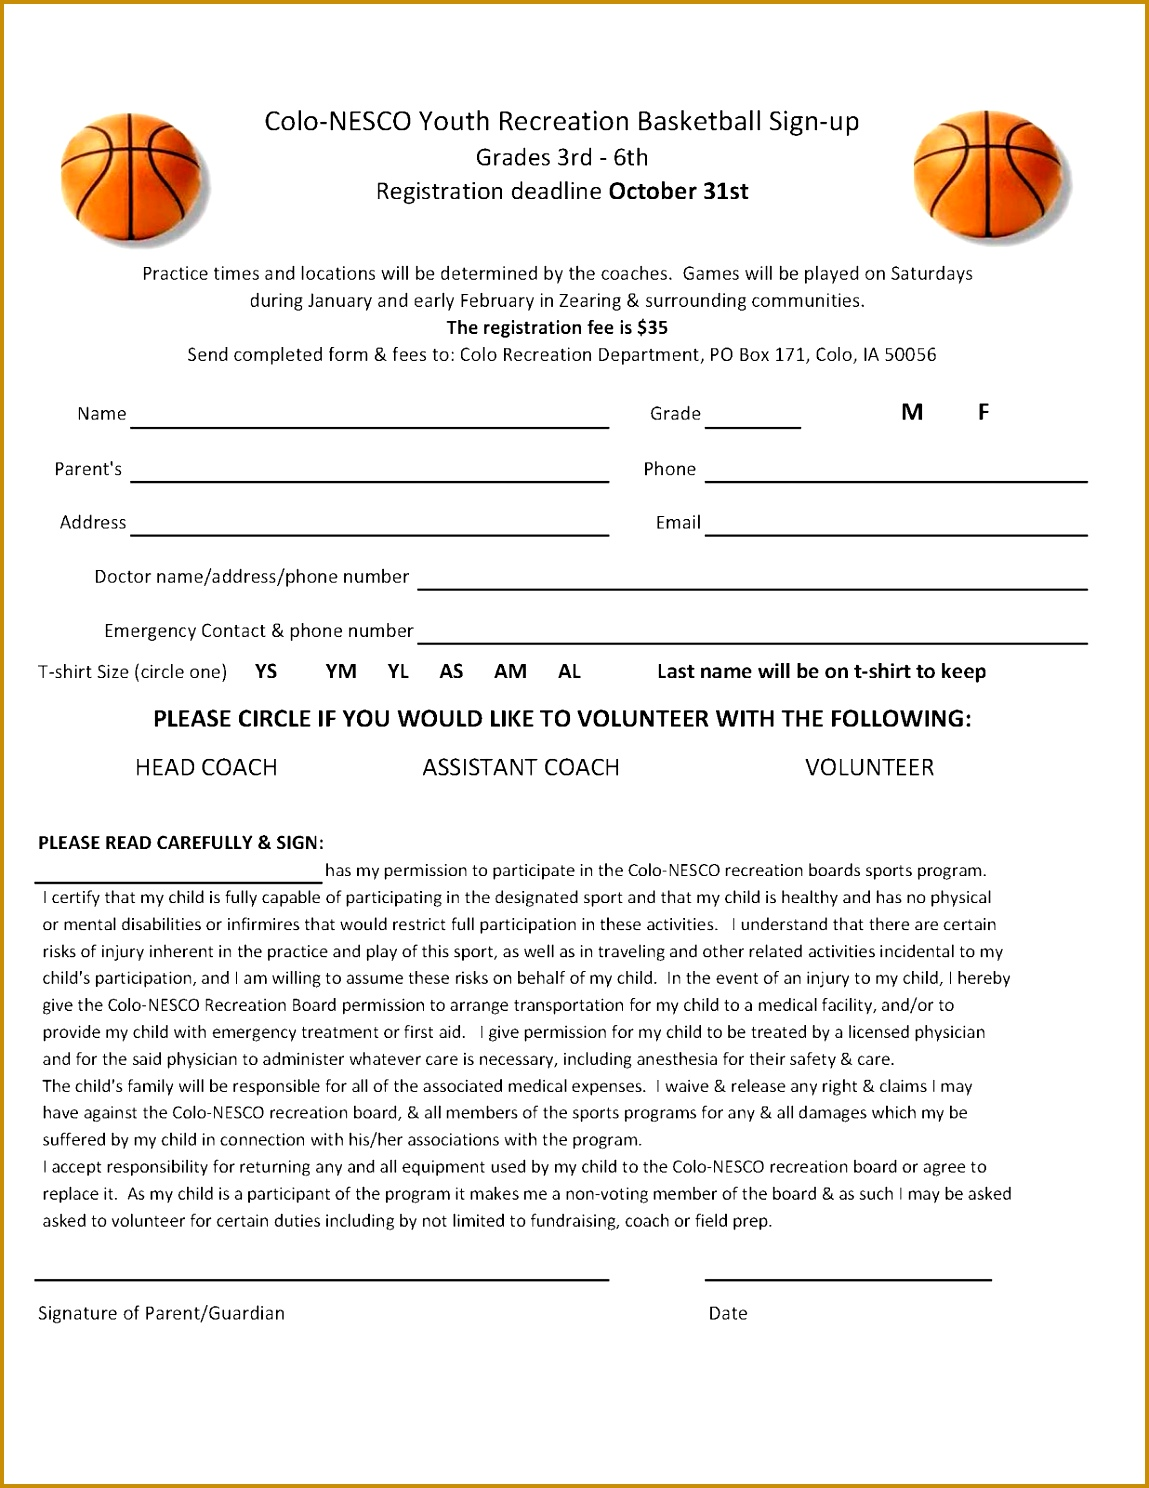 3 3 on 3 basketball tournament registration form template fabtemplatez football petition registration form 2014 3 on 3 basketball tournament registration form template 81921 colo nesco recreation 2012 thecheapjerseys Gallery